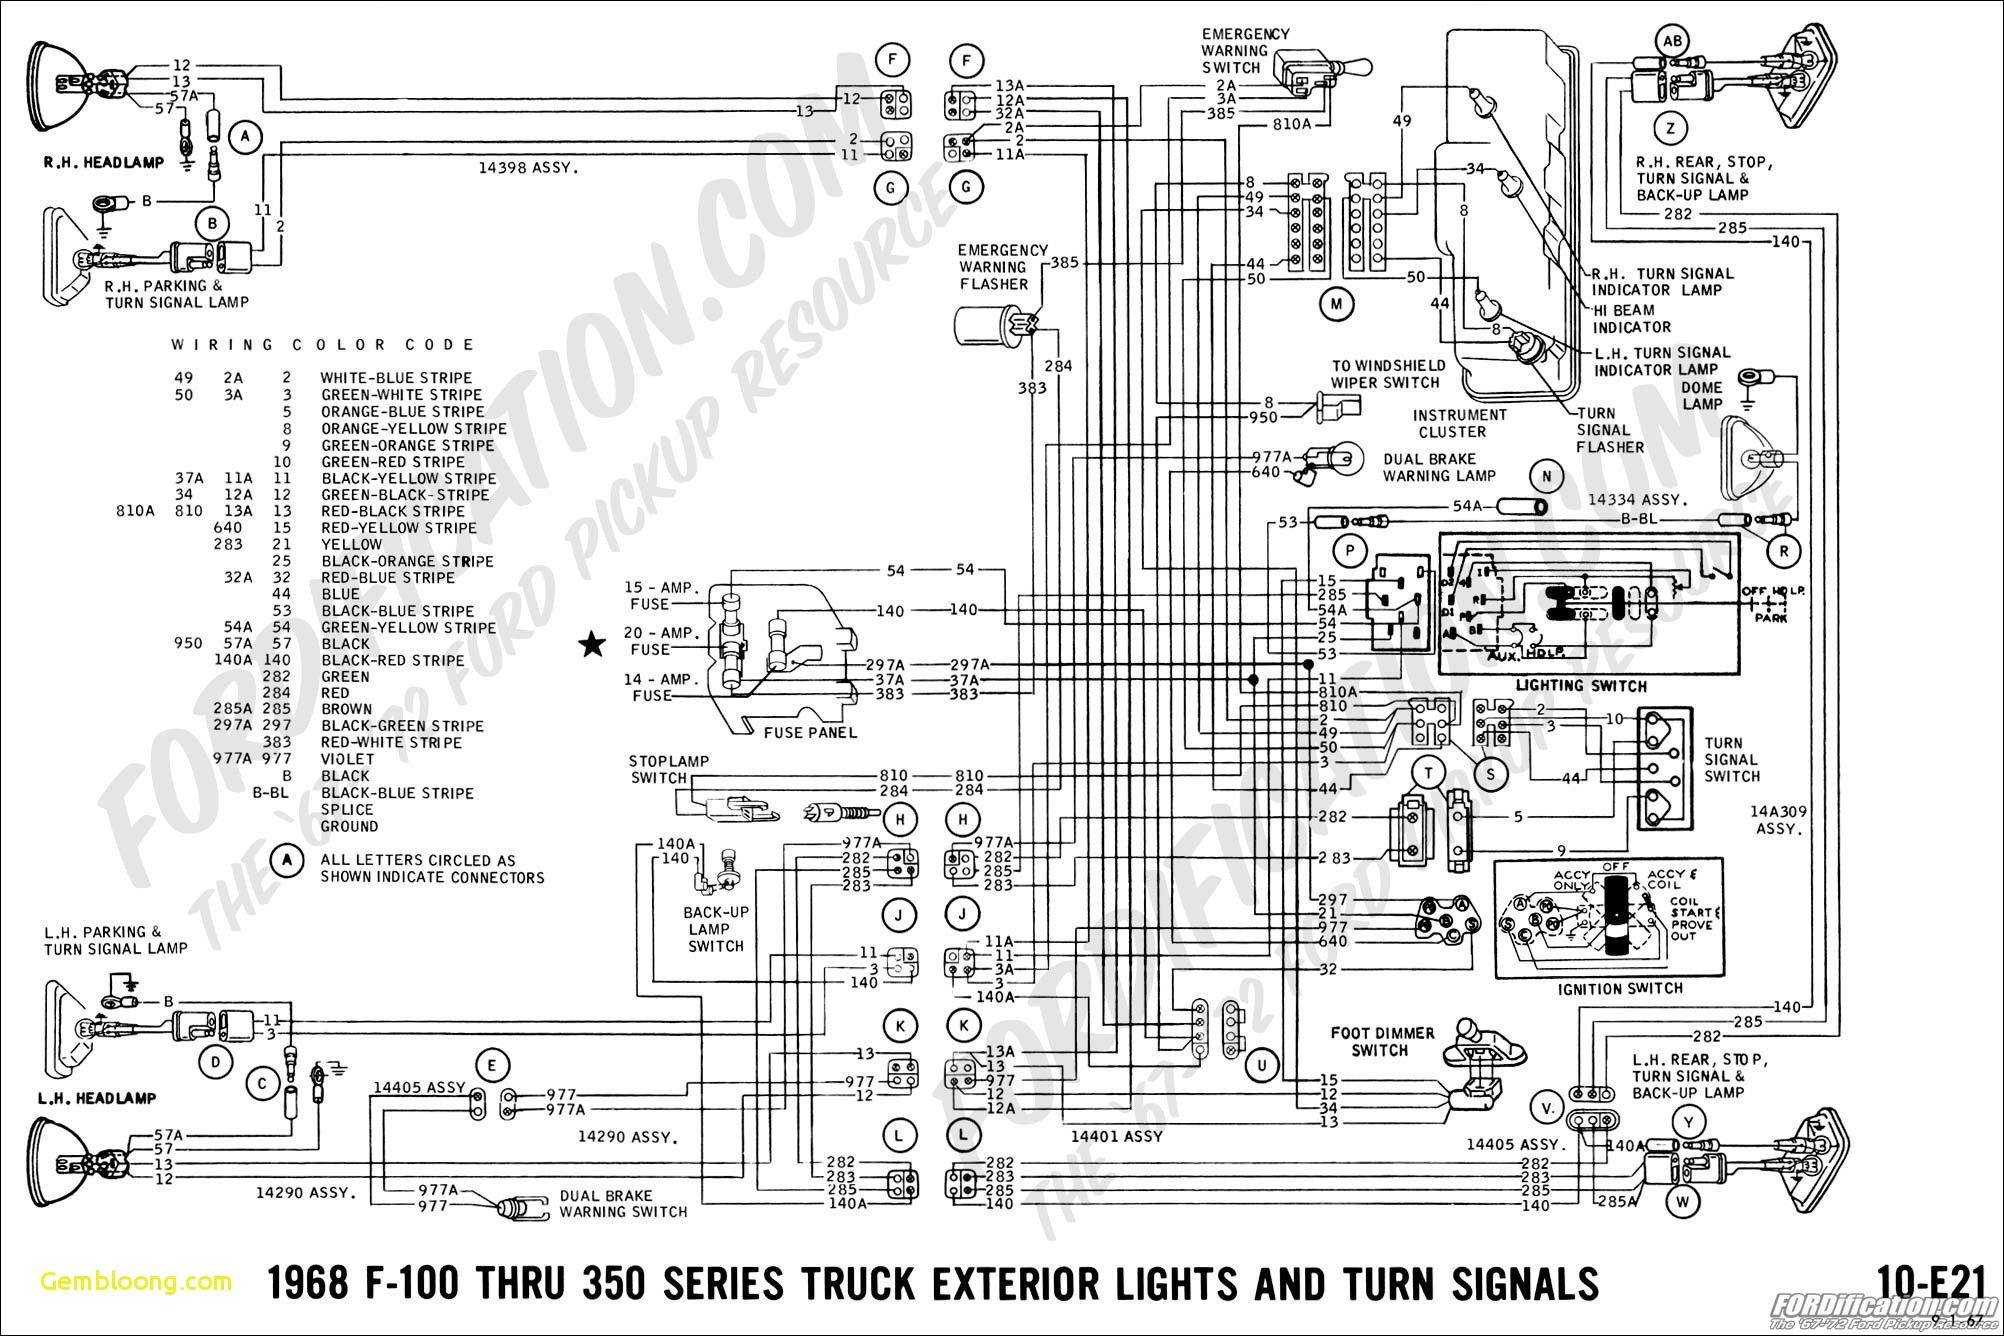 New 1999 Dodge Ram 1500 Tail Light Wiring Diagram  With